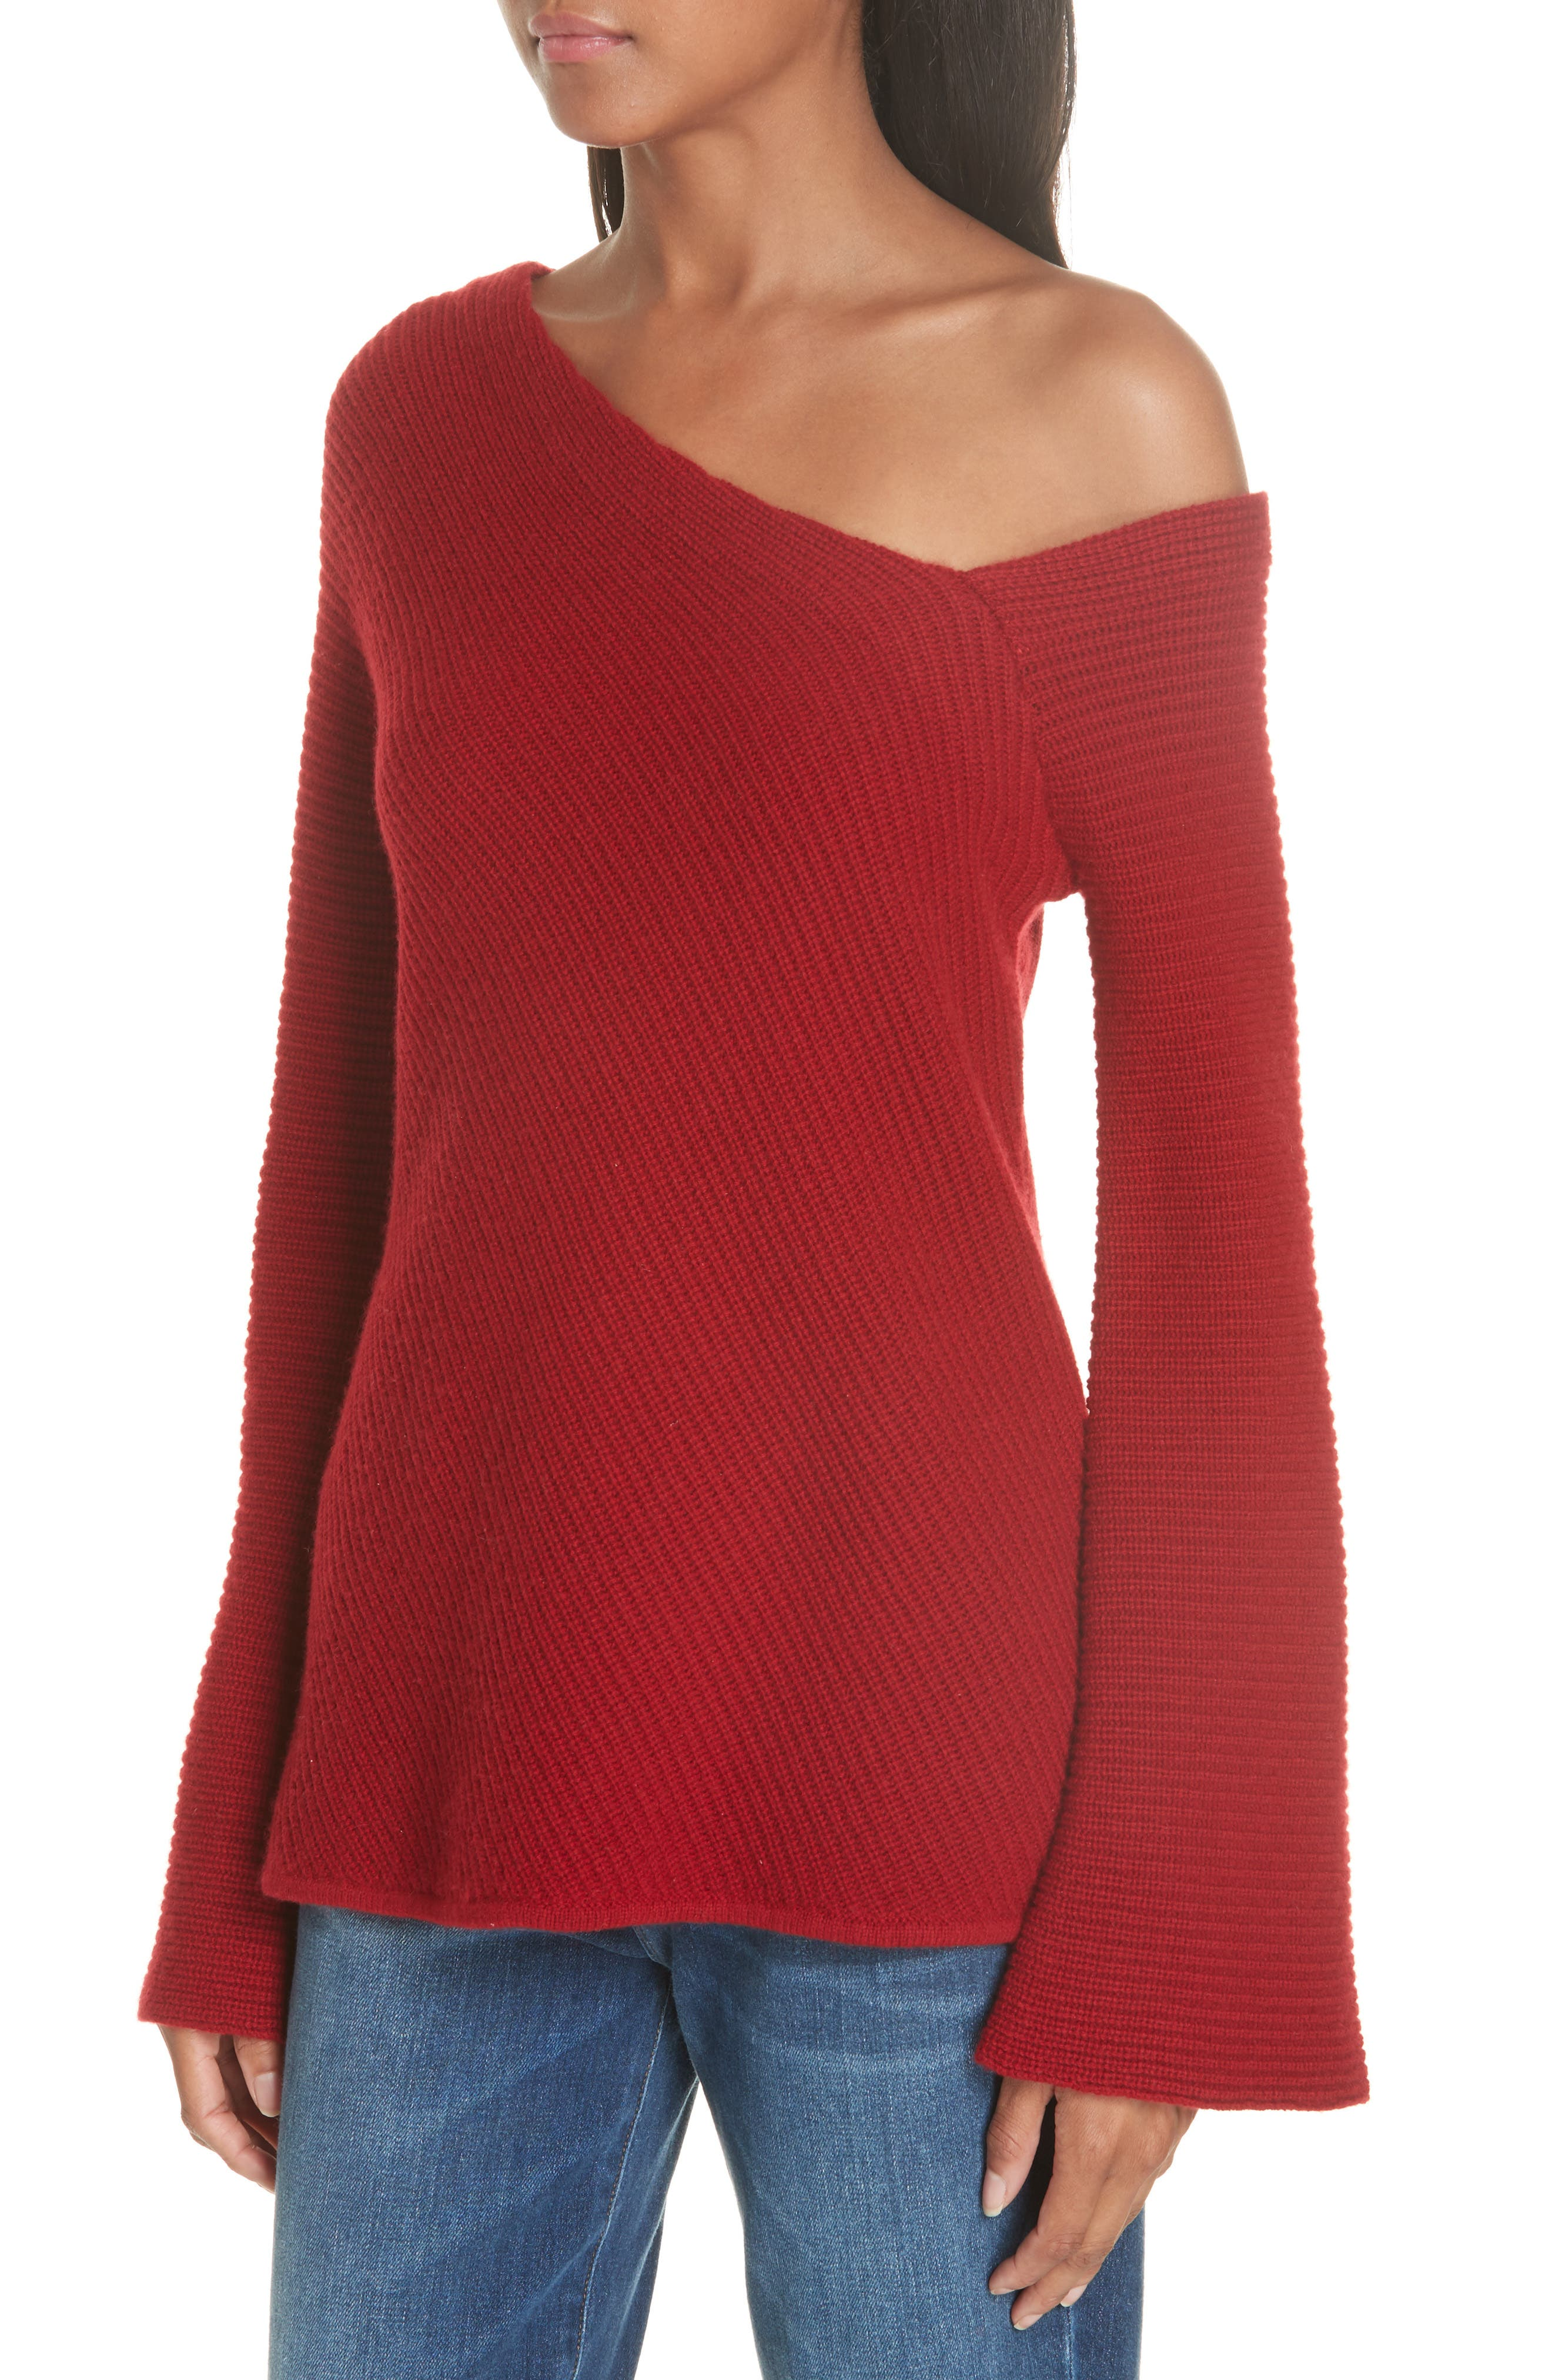 Charly Wool & Cashmere One-Shoulder Sweater,                             Alternate thumbnail 4, color,                             RED